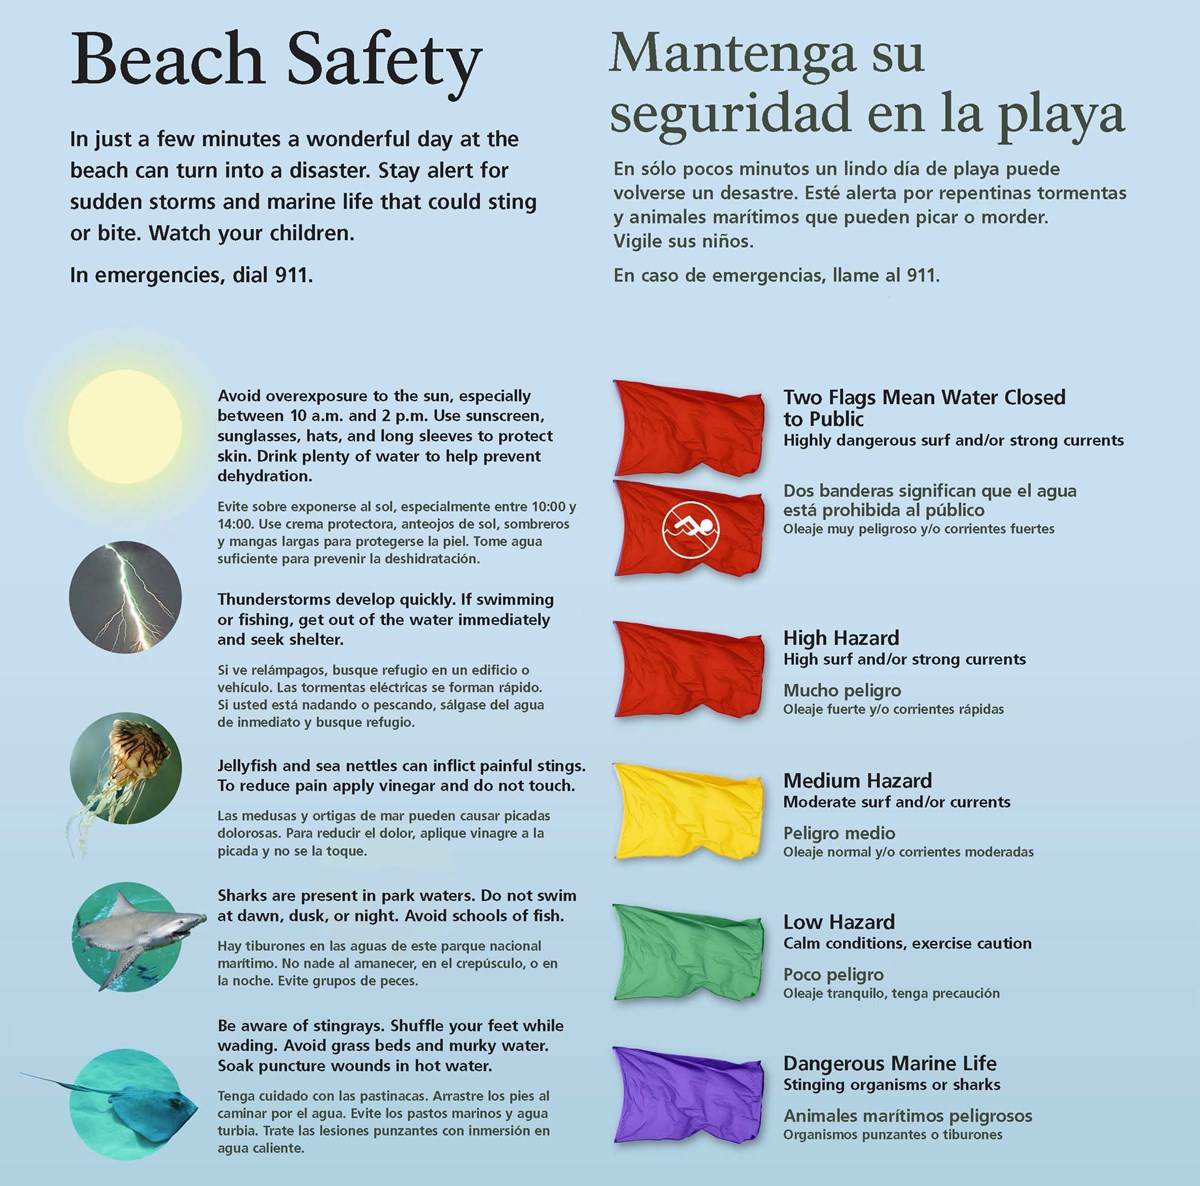 Signs with beach safety information as well as flags showing beach conditions